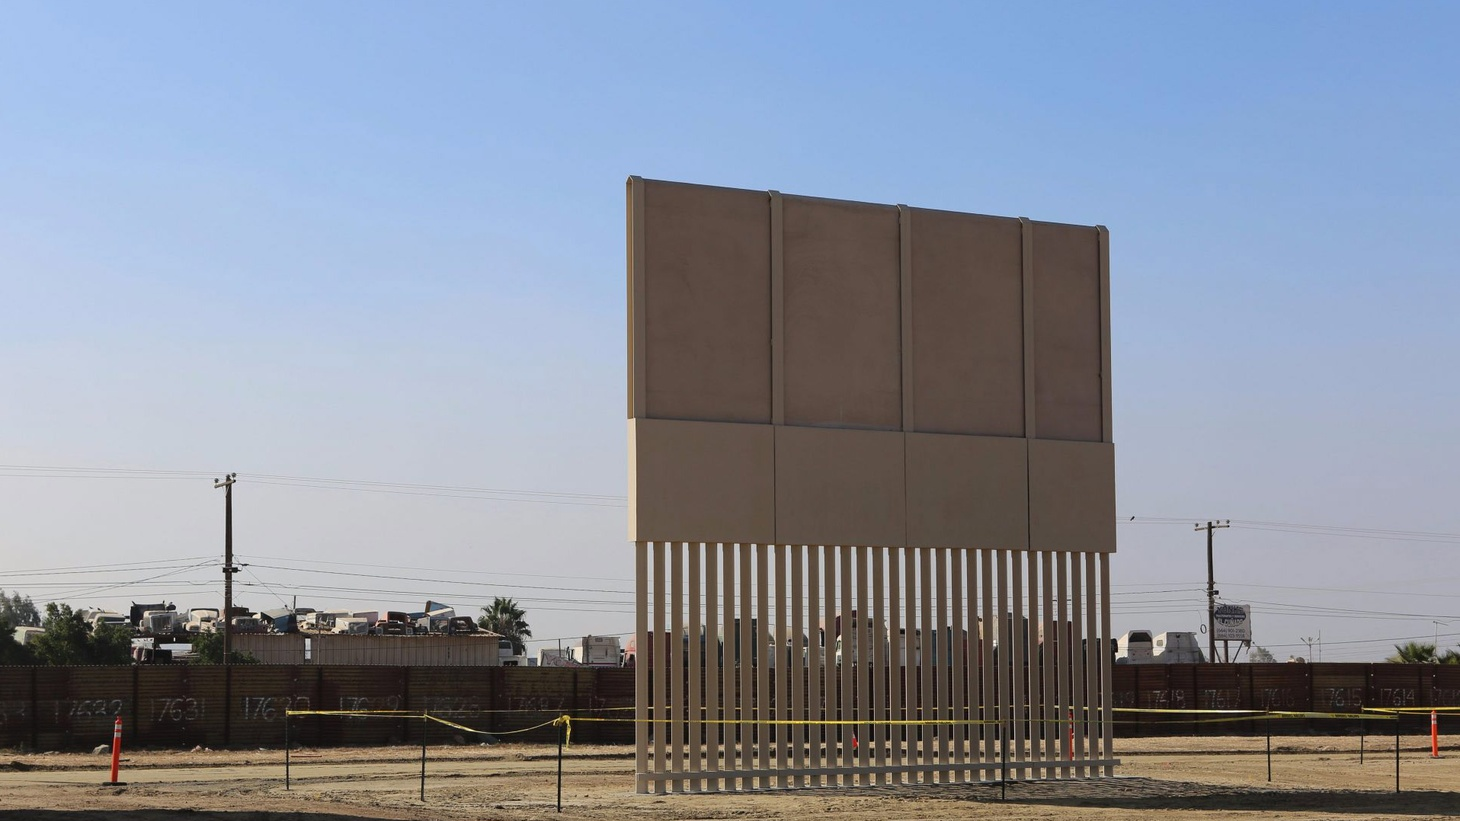 This is one of the three border wall prototypes constructed that people are able  to see through because at least the bottom half is made of spaced steel bars.  Photo by Jenny Hamel/KCRW.